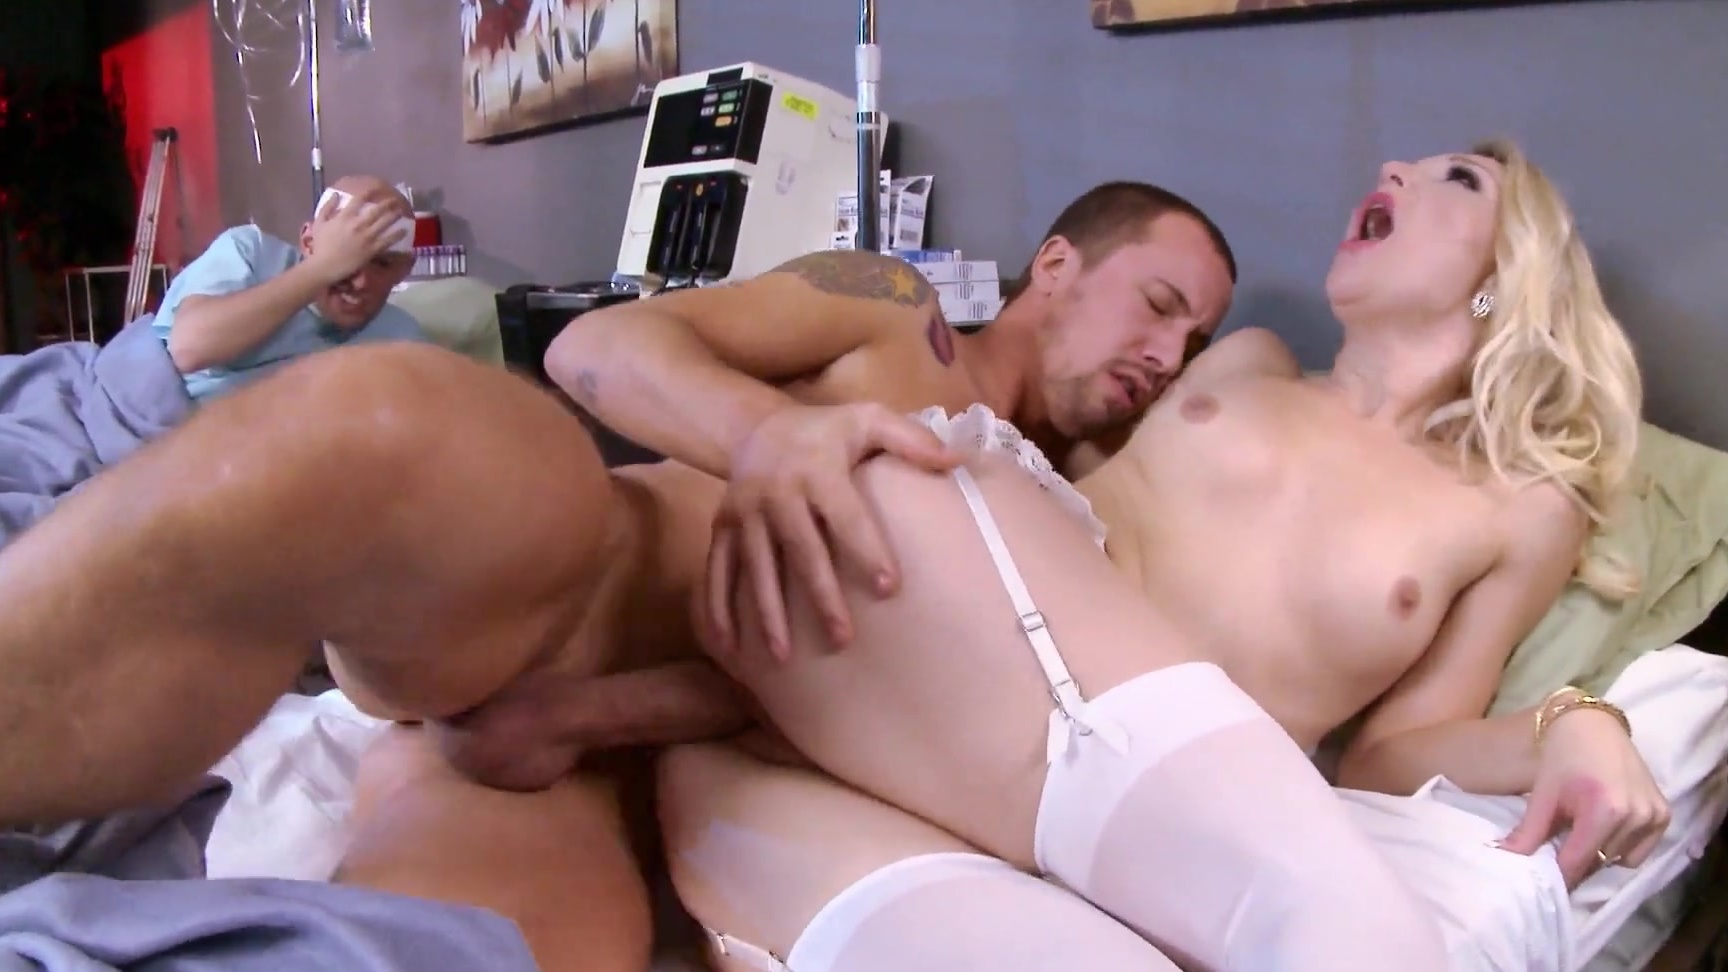 agree, the amusing free male spanking gay shaking, support. Your idea